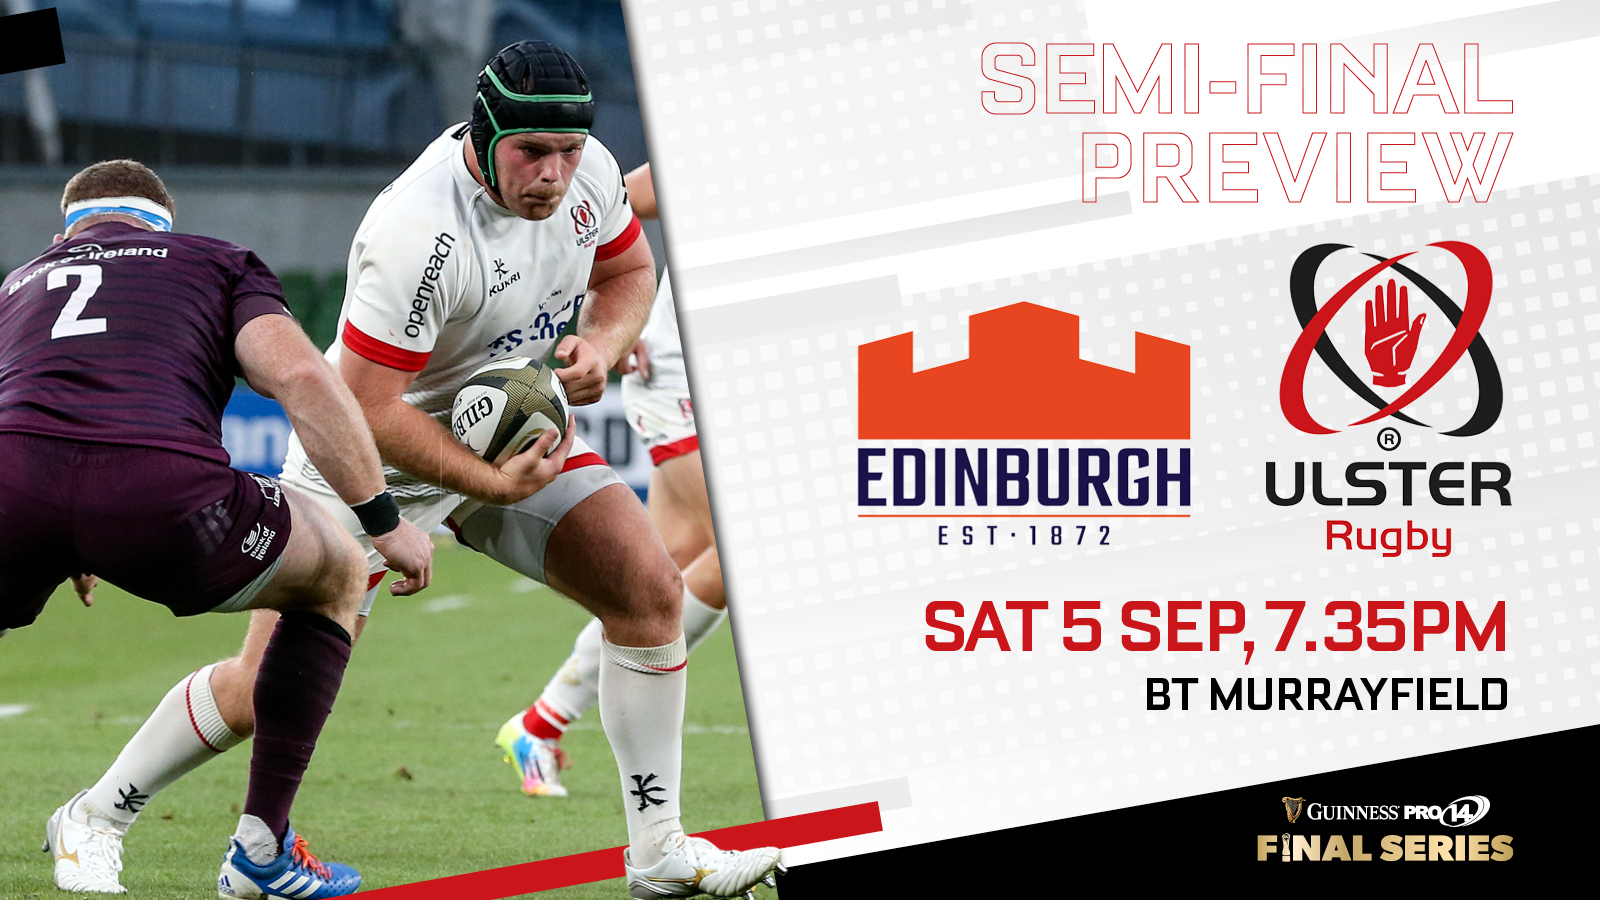 Ulster Rugby Match Preview Edinburgh V Ulster Guinness Pro14 Semi Final